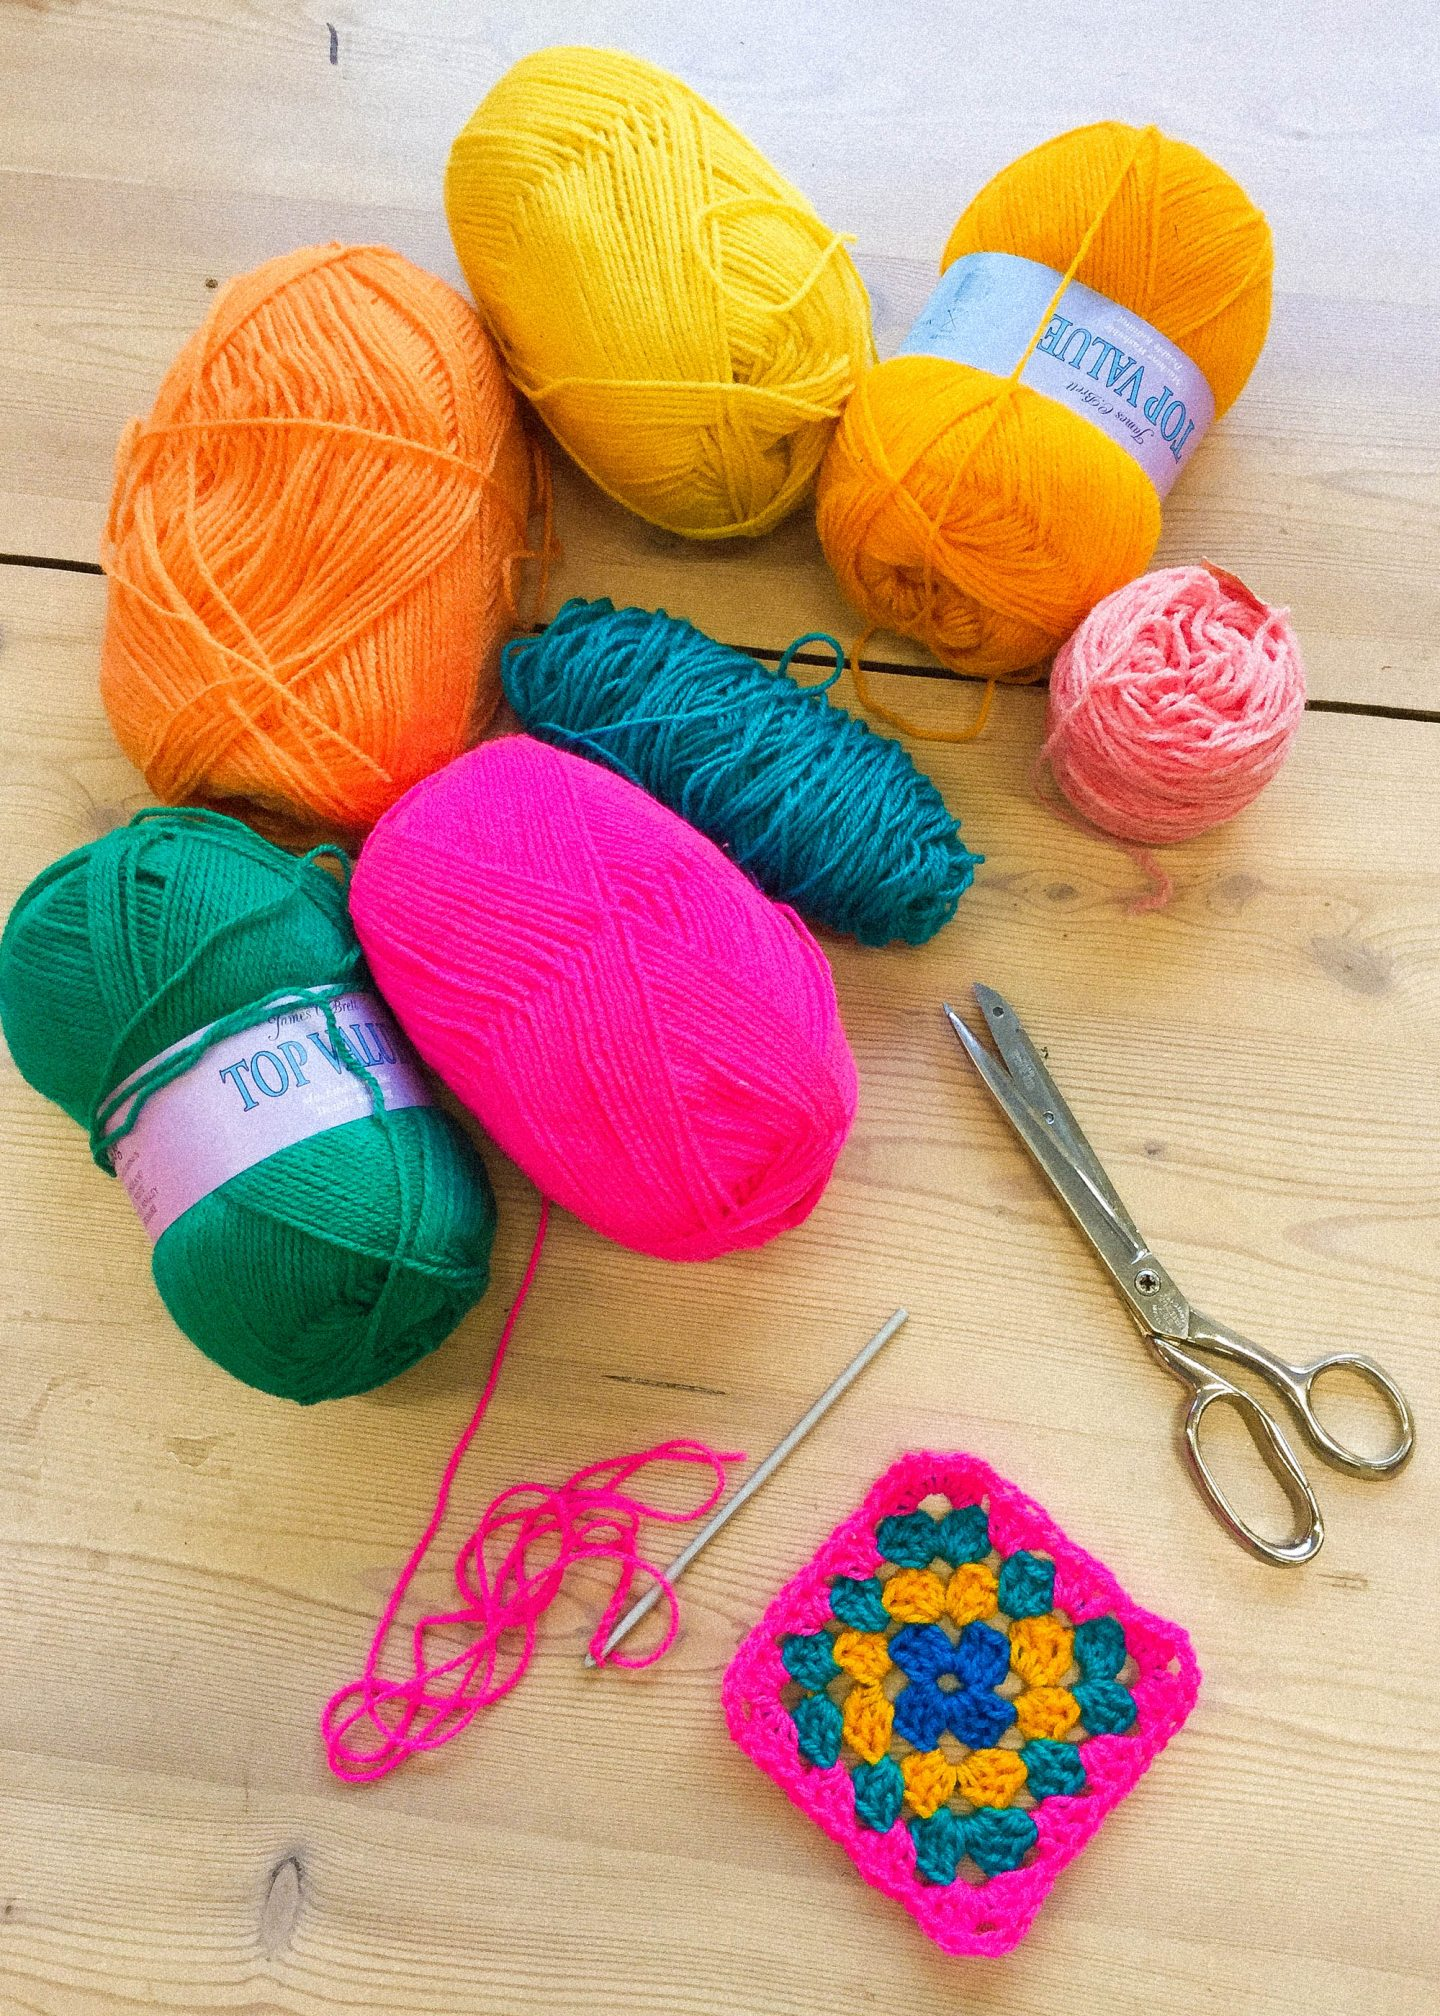 Stitch please! Collaborative crochet with Cathy for Brainchild festival